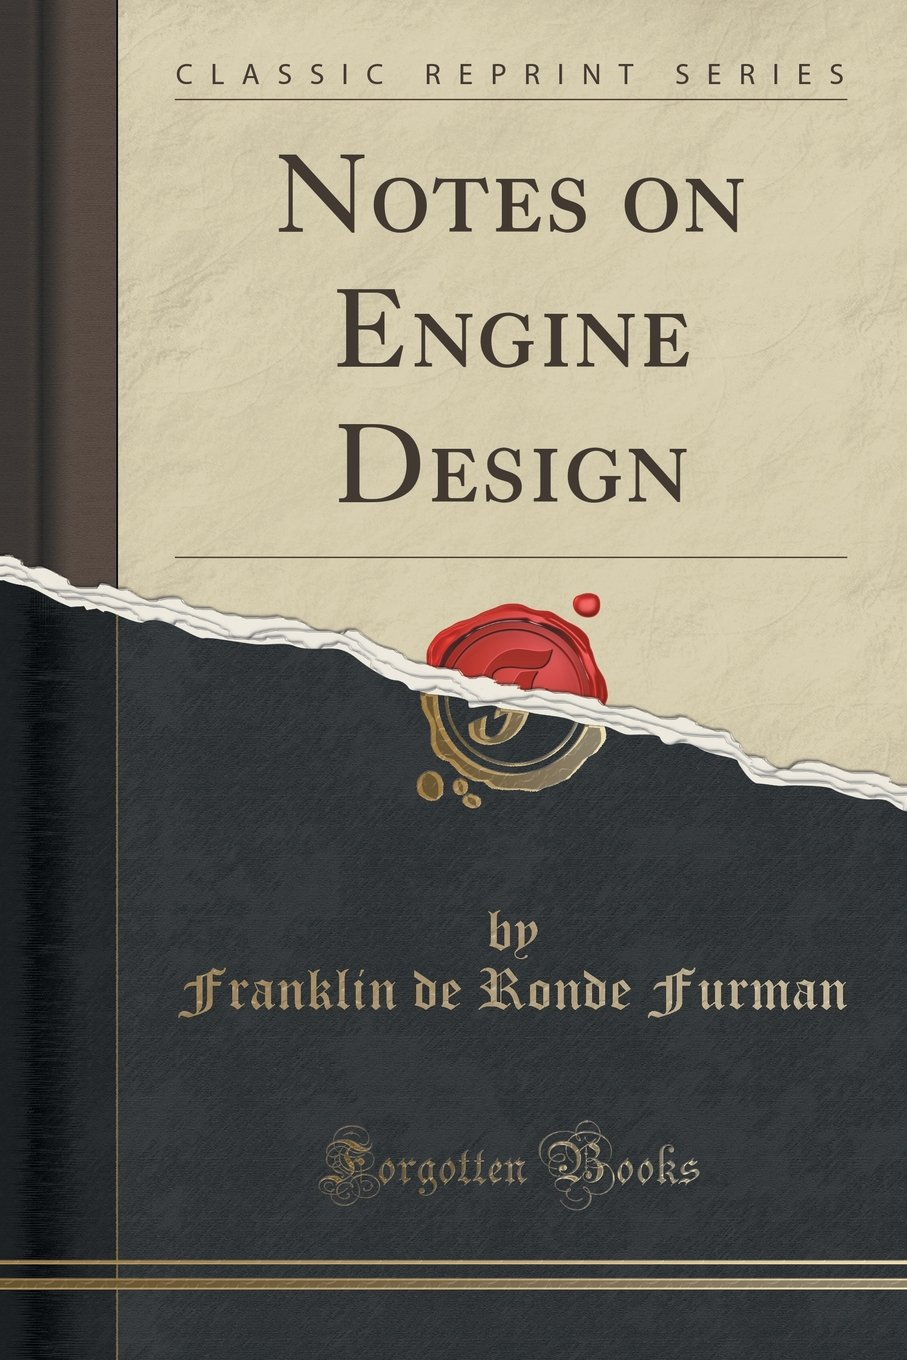 notes-on-engine-design-classic-reprint